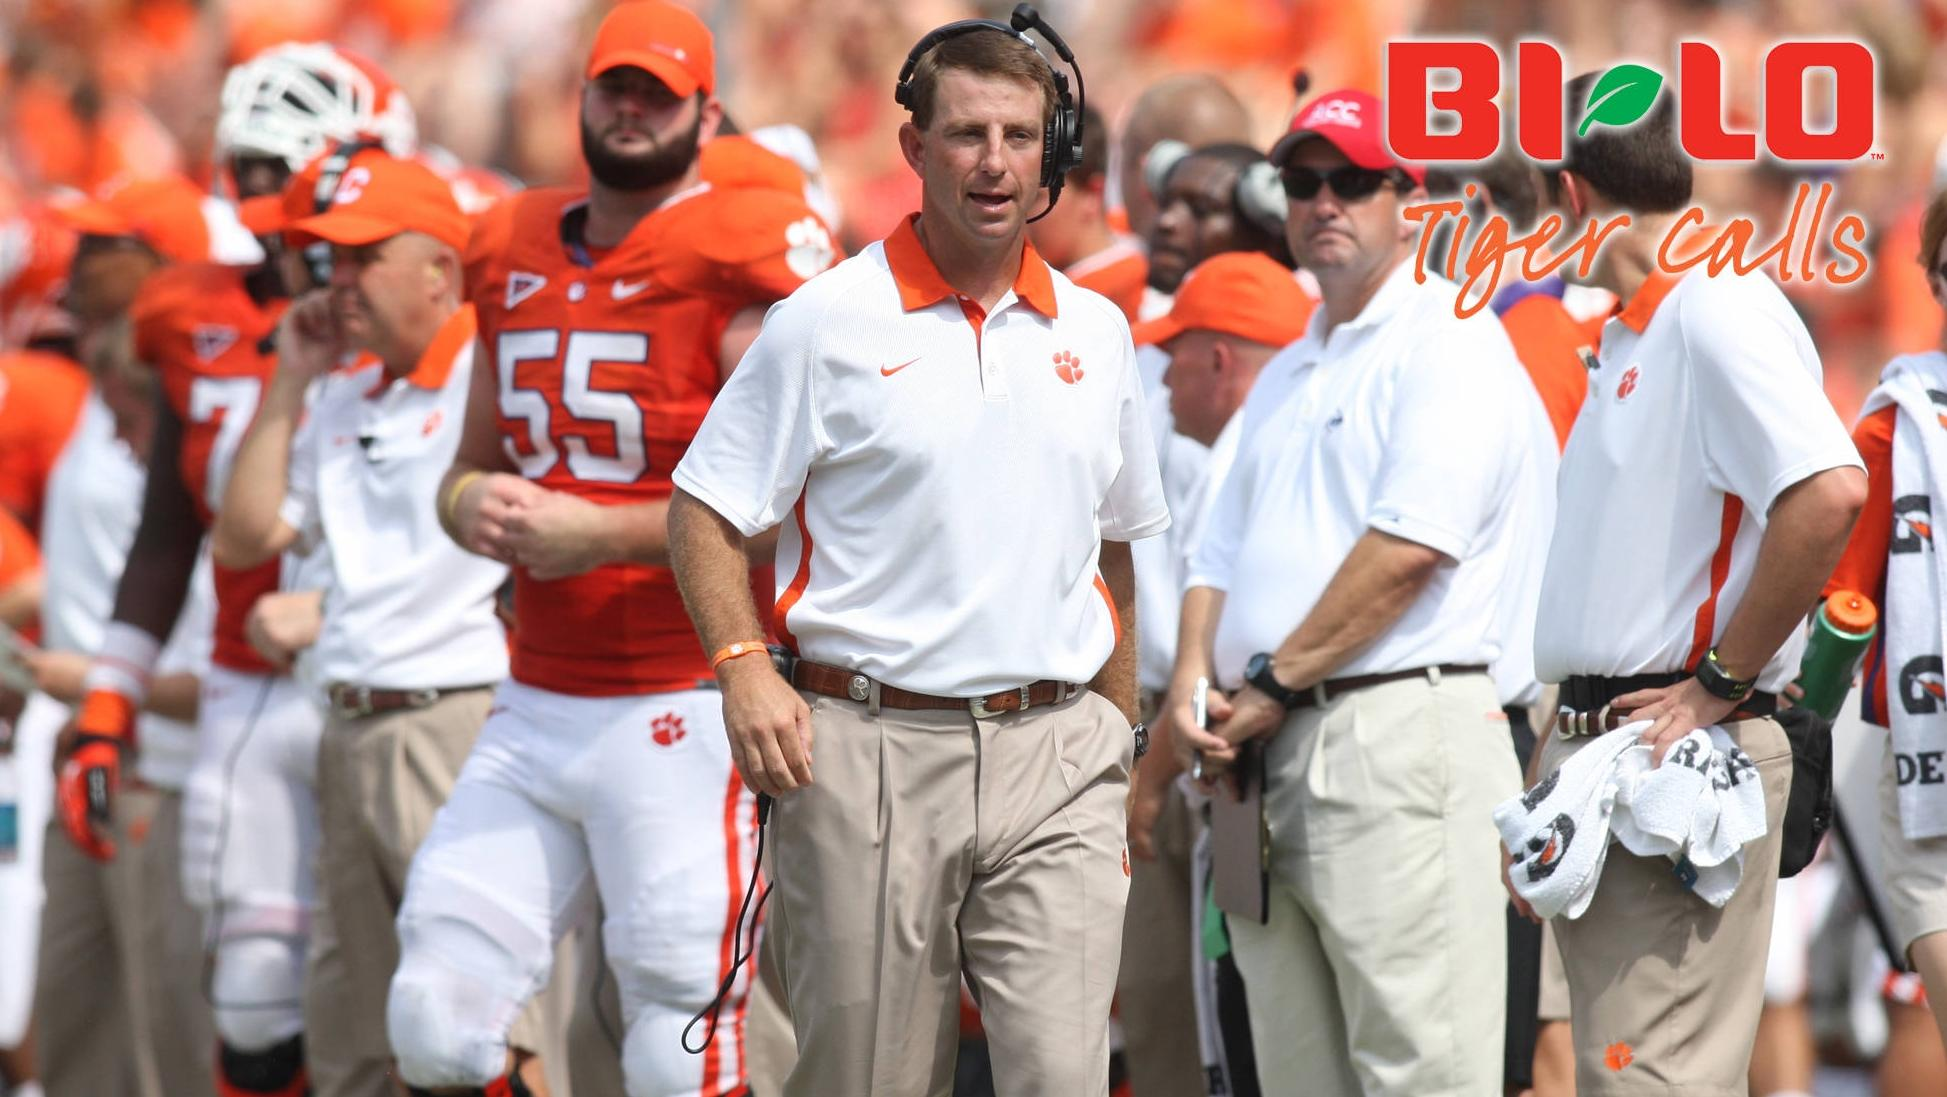 Tiger Calls with Dabo Swinney to be Held at BI-LO in Powdersville Monday Night, Available on CTSN and Sirius XM Radio